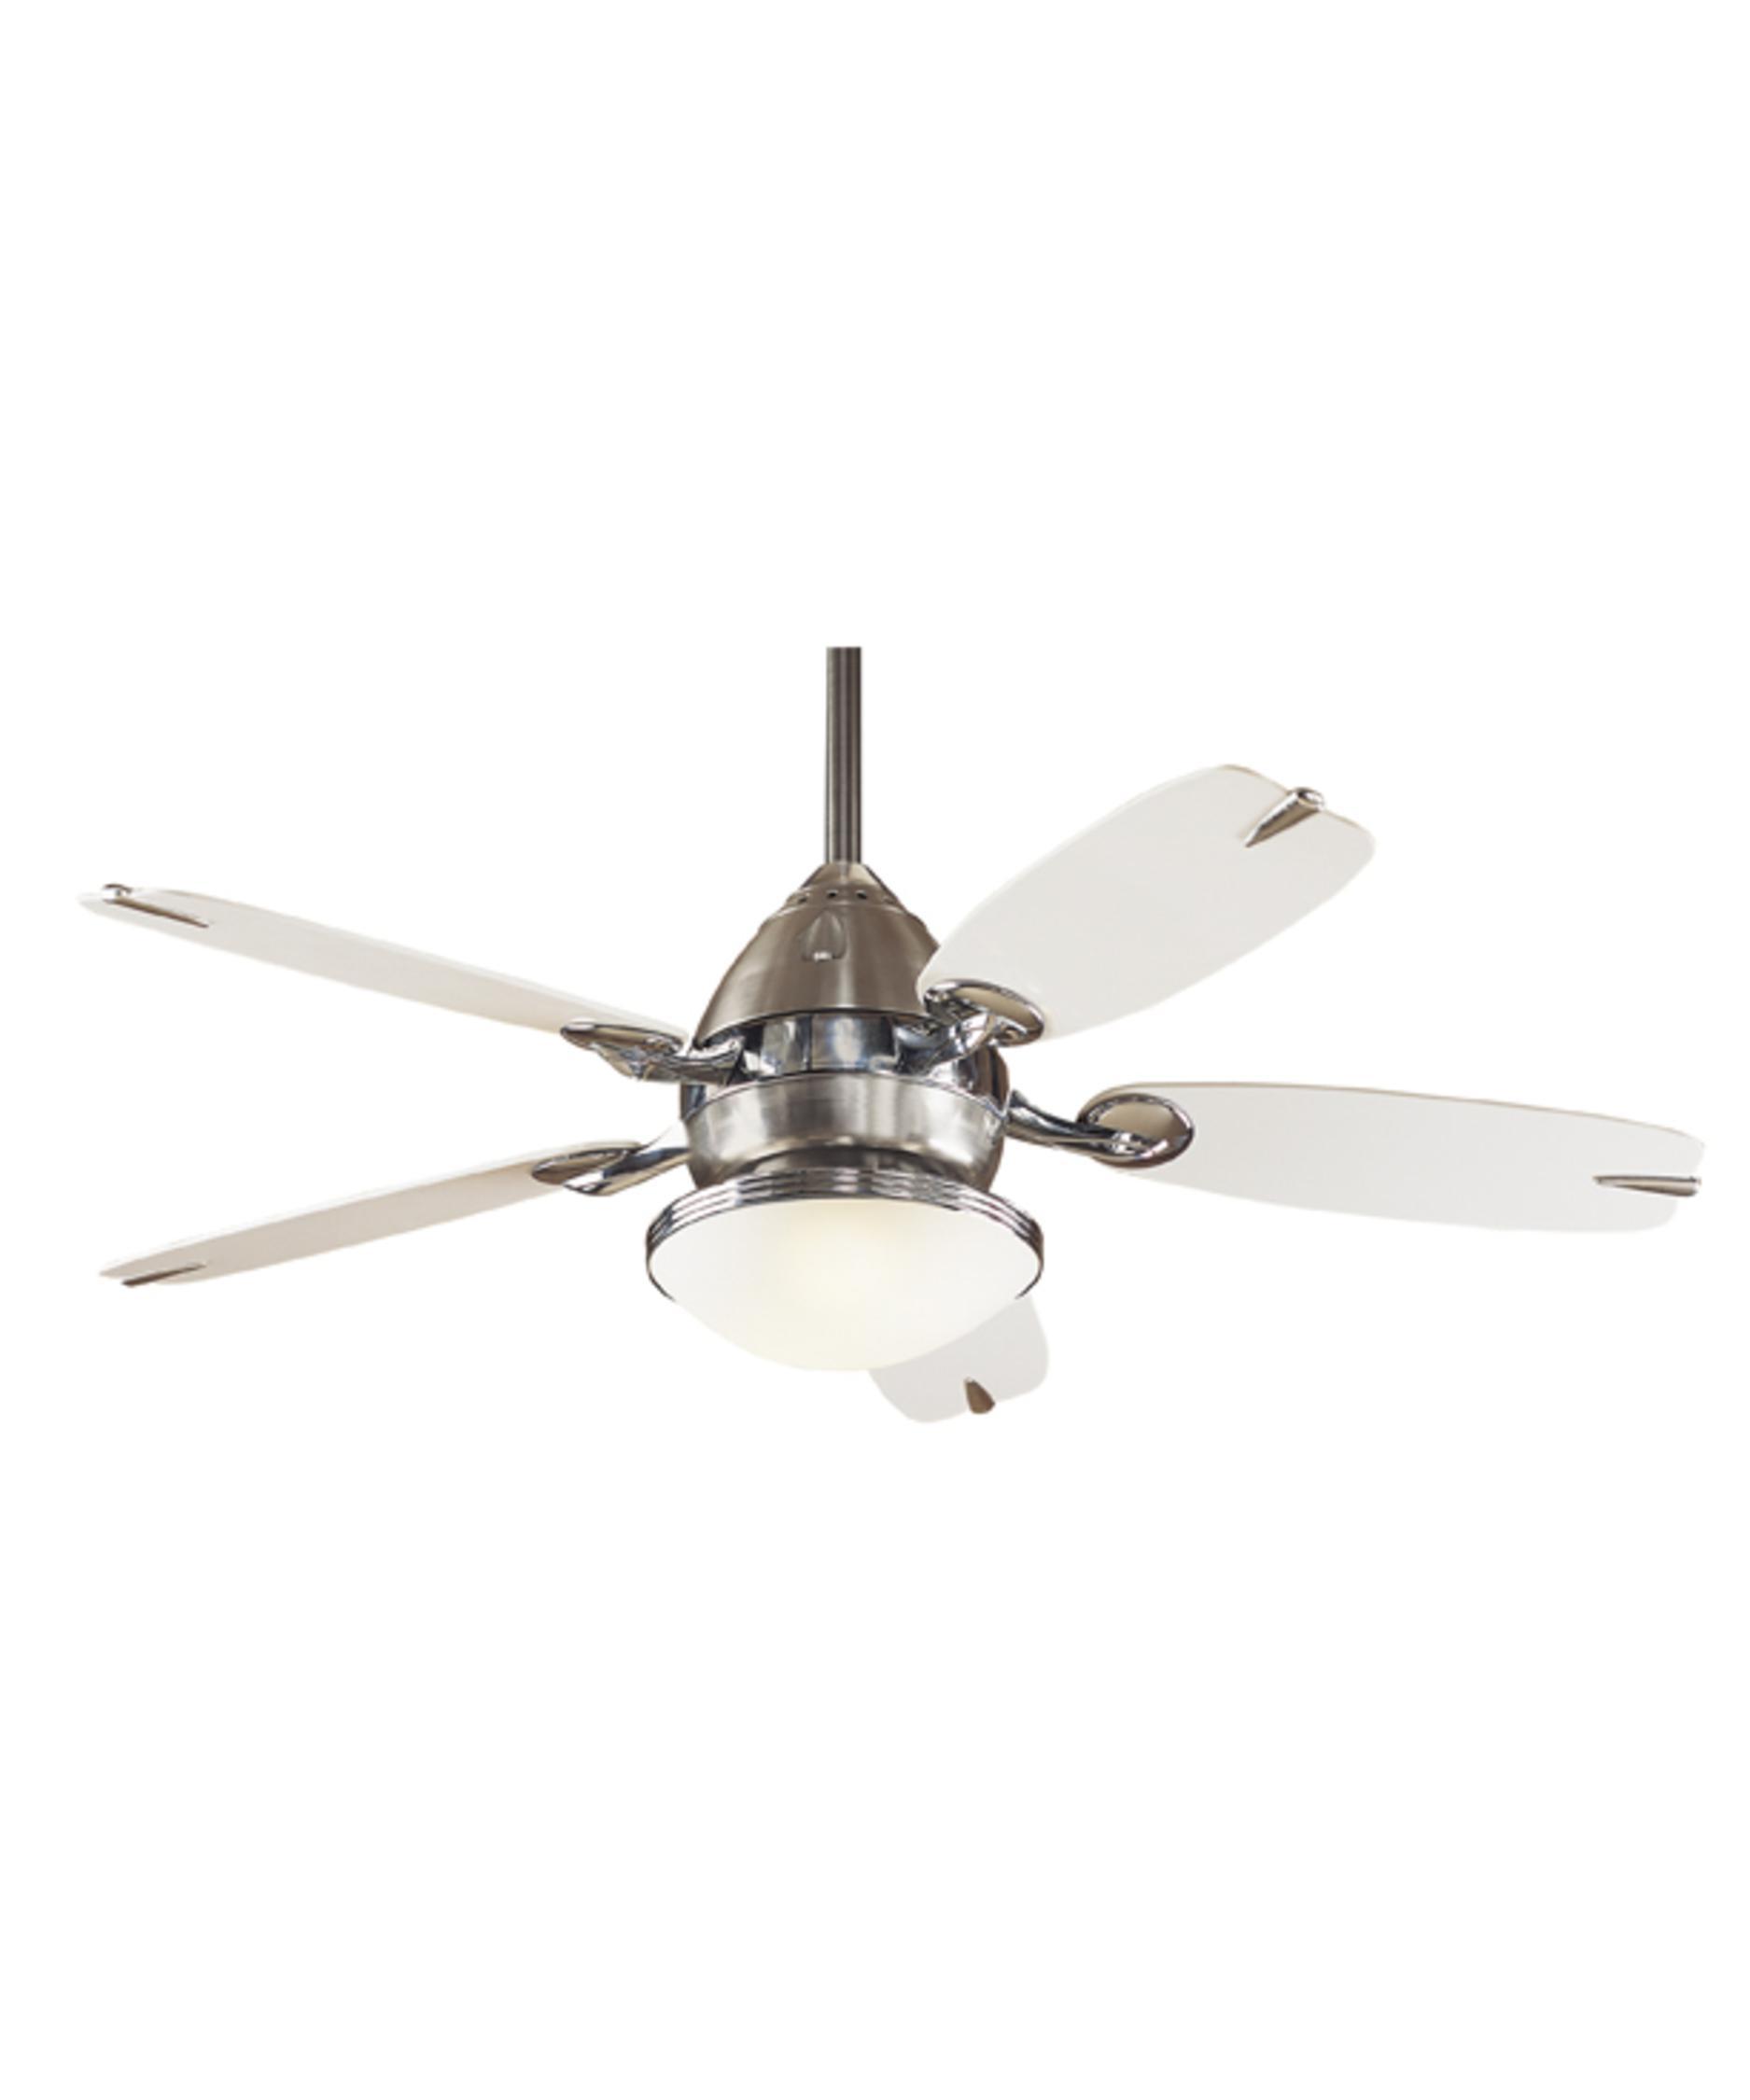 Hunter Fan 25751 Retro 48 Inch Ceiling Fan With Light Kit